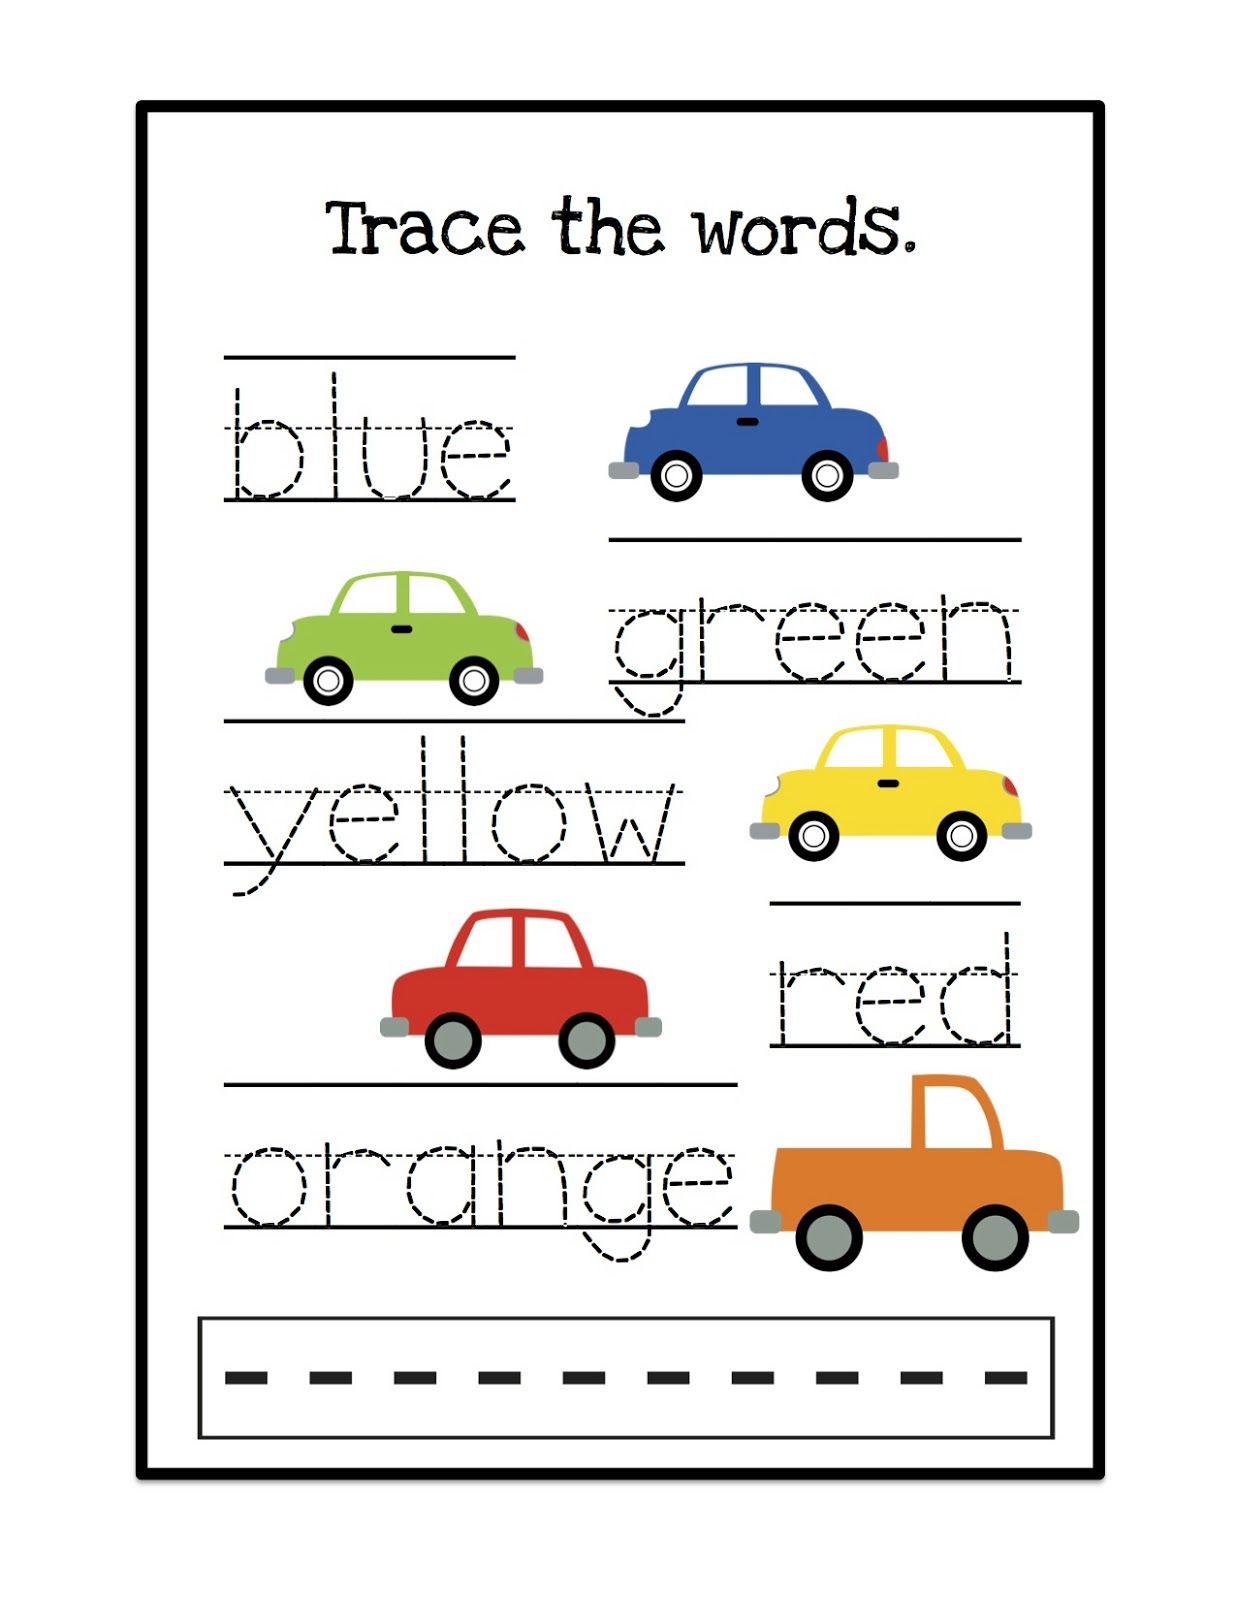 Environment Word Tracing Worksheet For Preschoolers